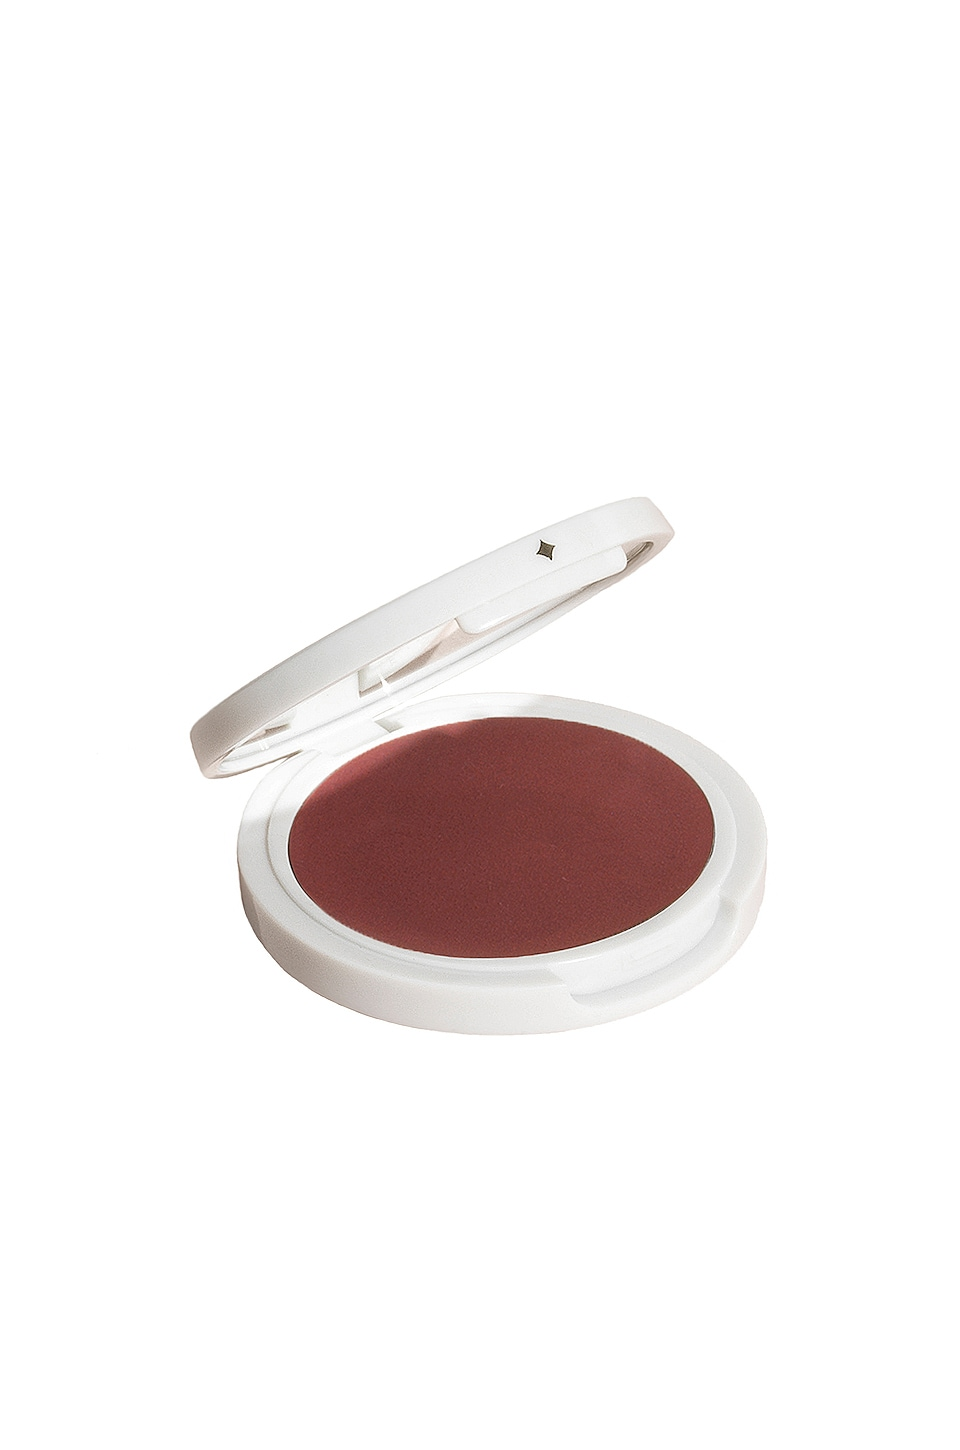 Jillian Dempsey Lid Tint Satin Eye Shadow in Plum